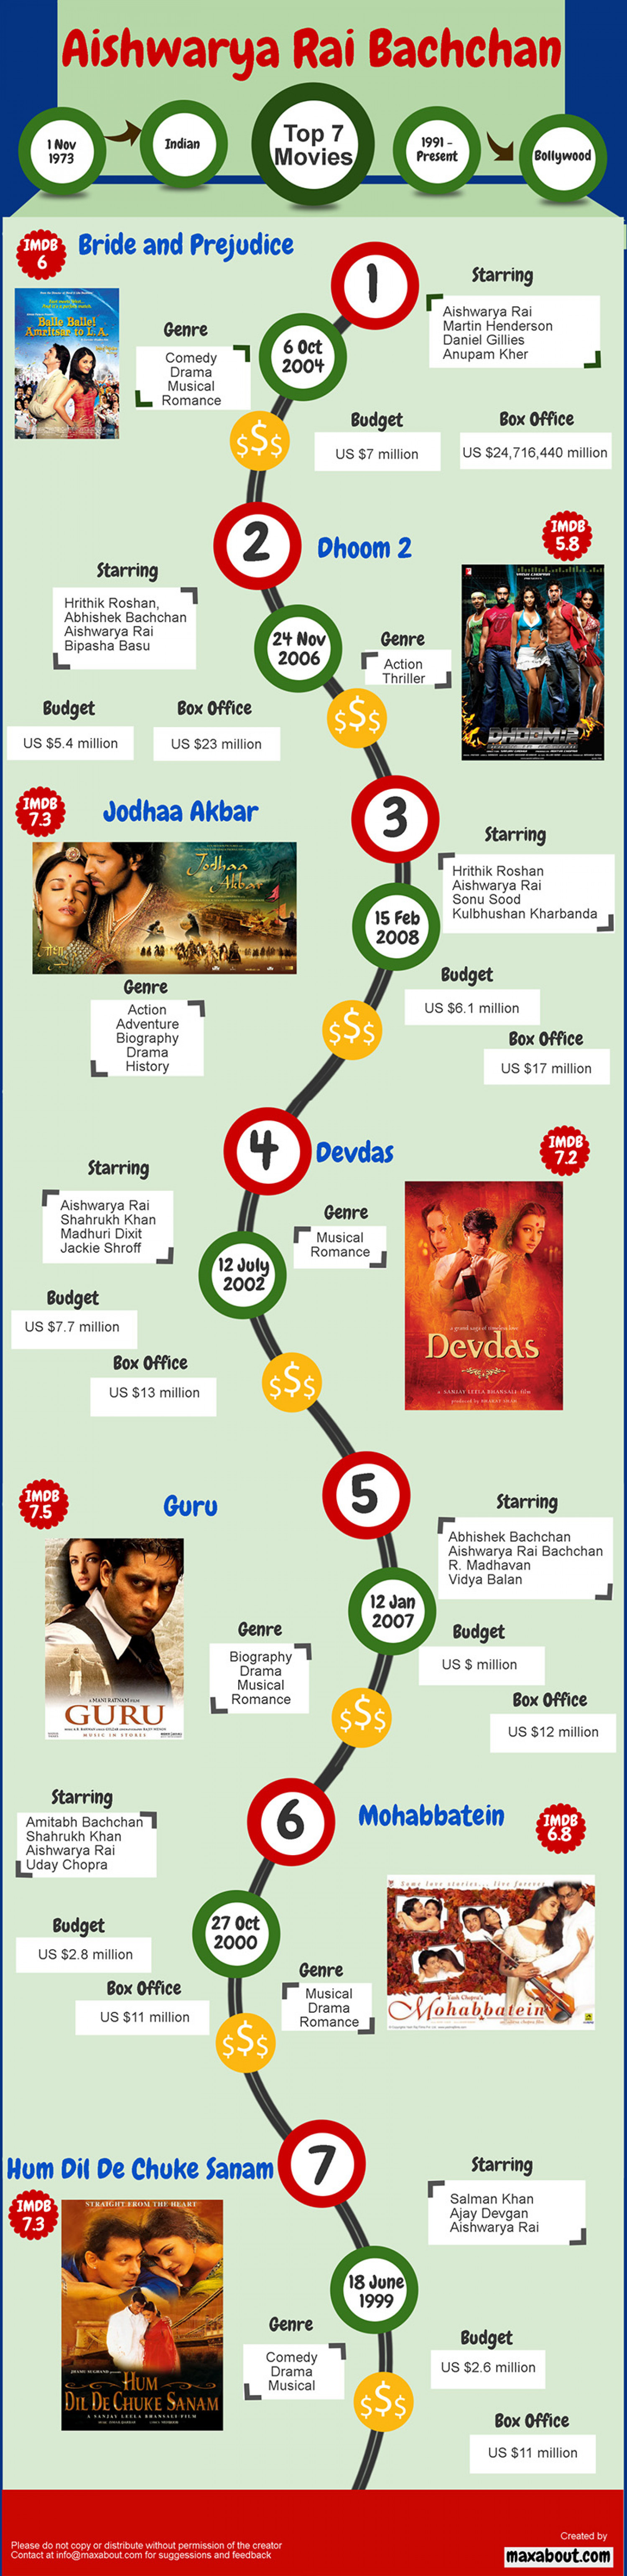 Top 7 Movies of Aishwarya Rai Infographic